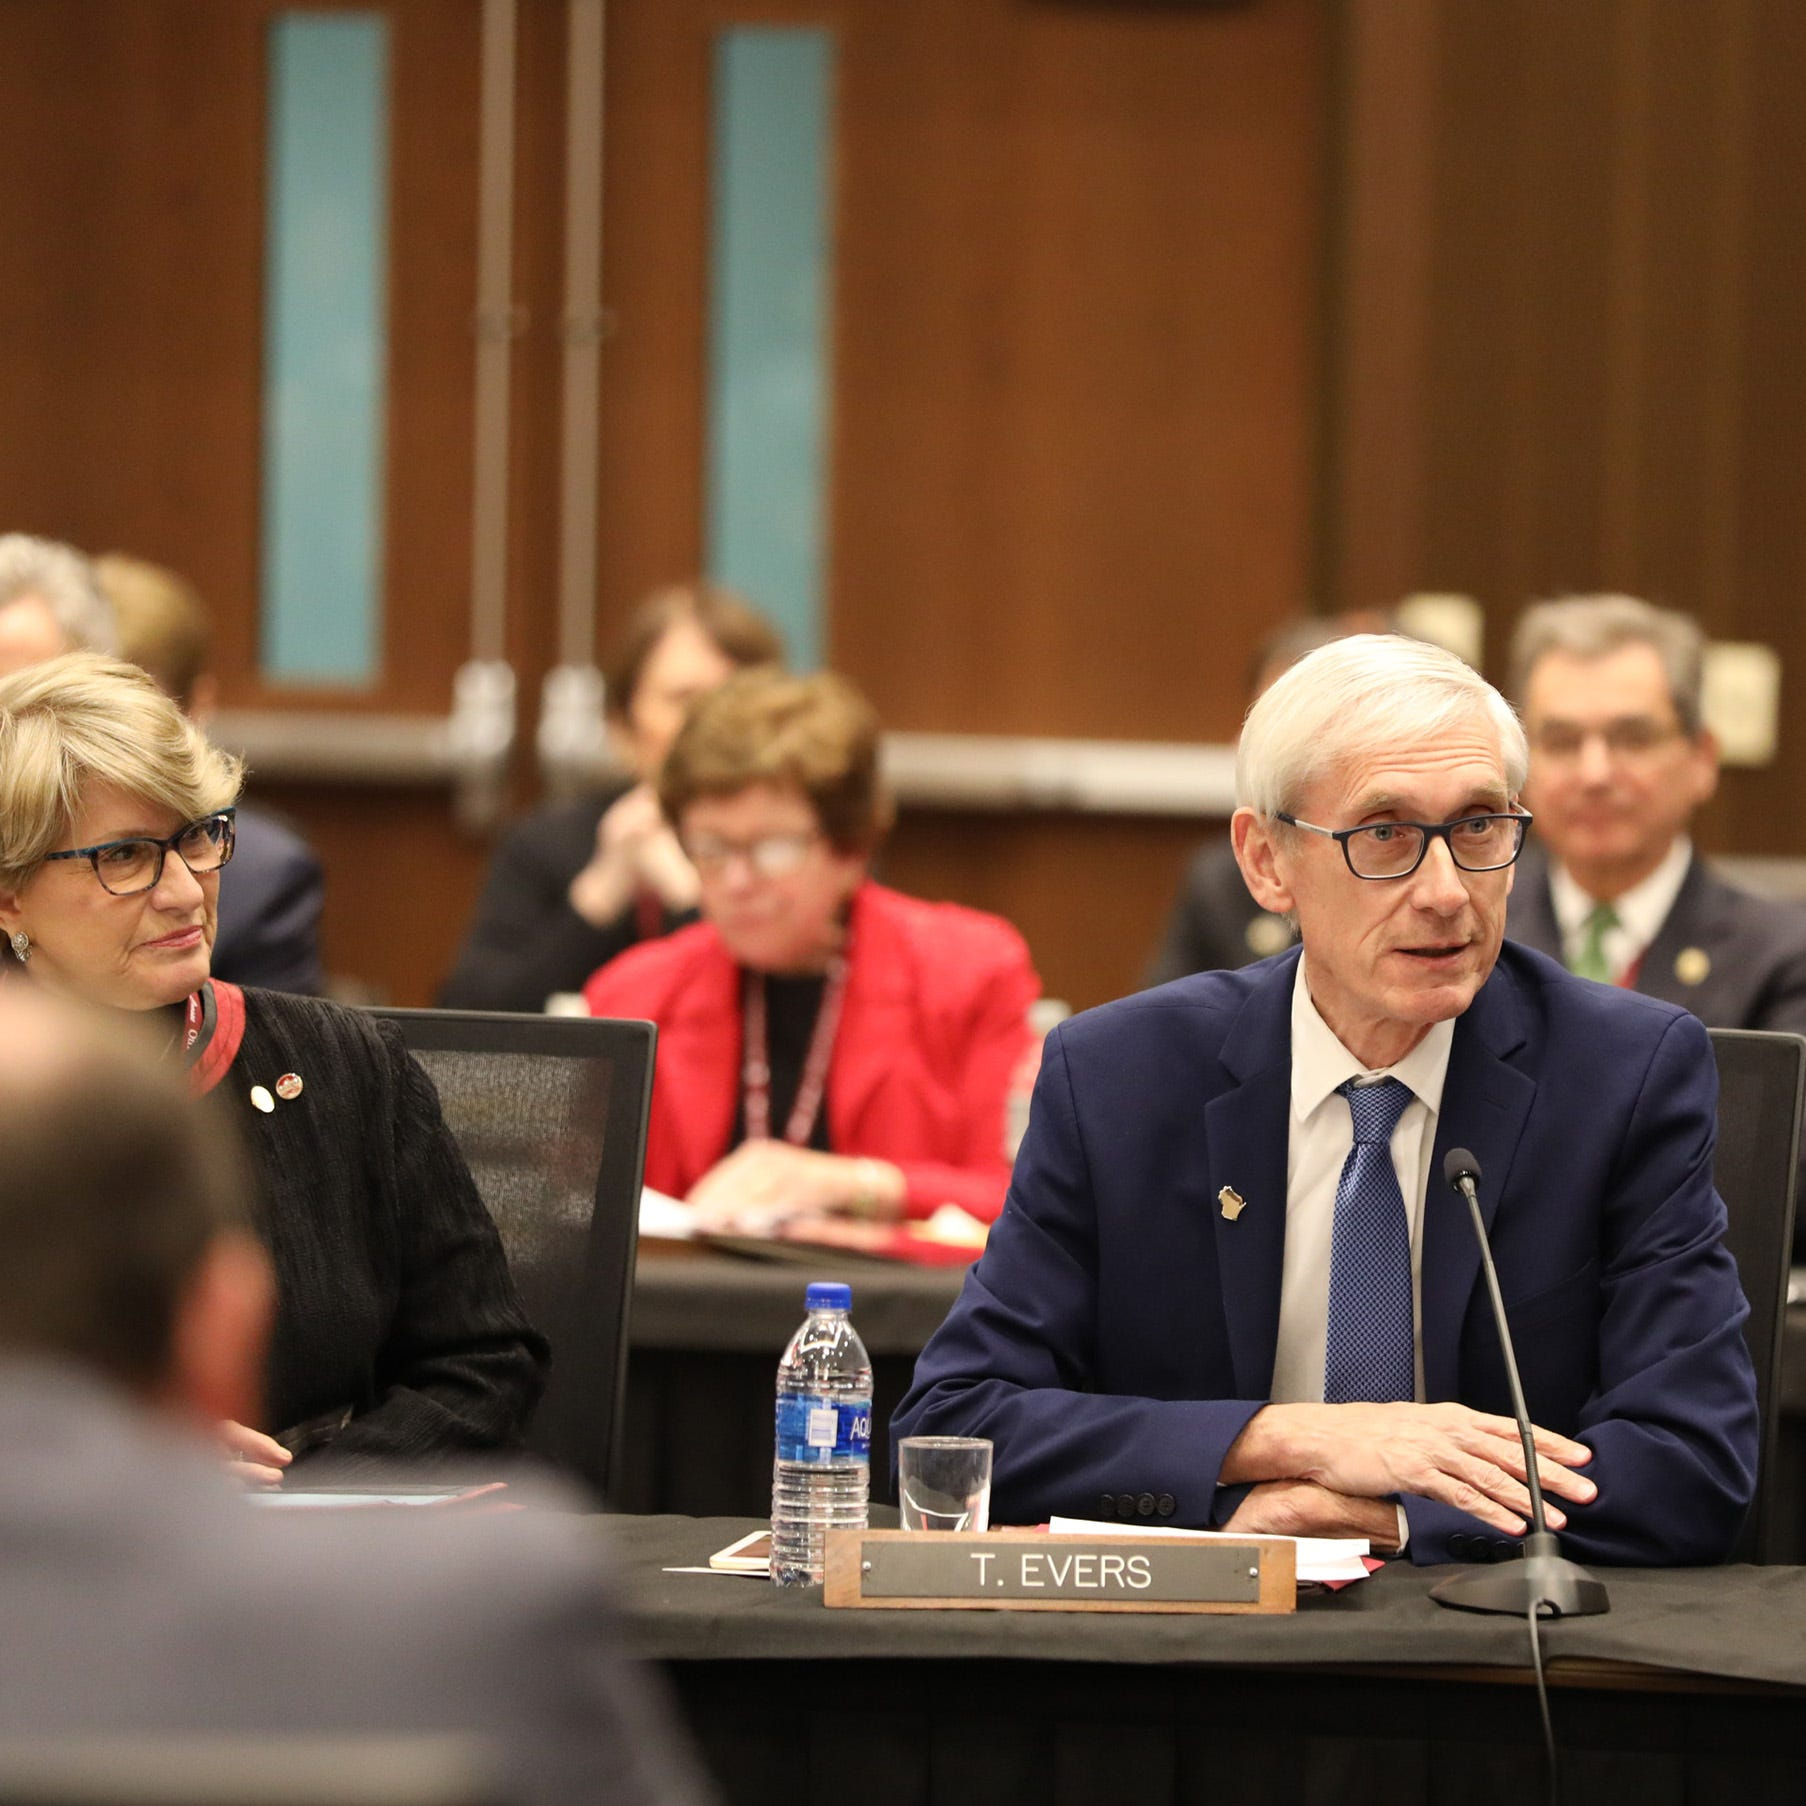 Tony Evers says he will appoint UW regents who are independent thinkers, not 'acting as an employee of mine'